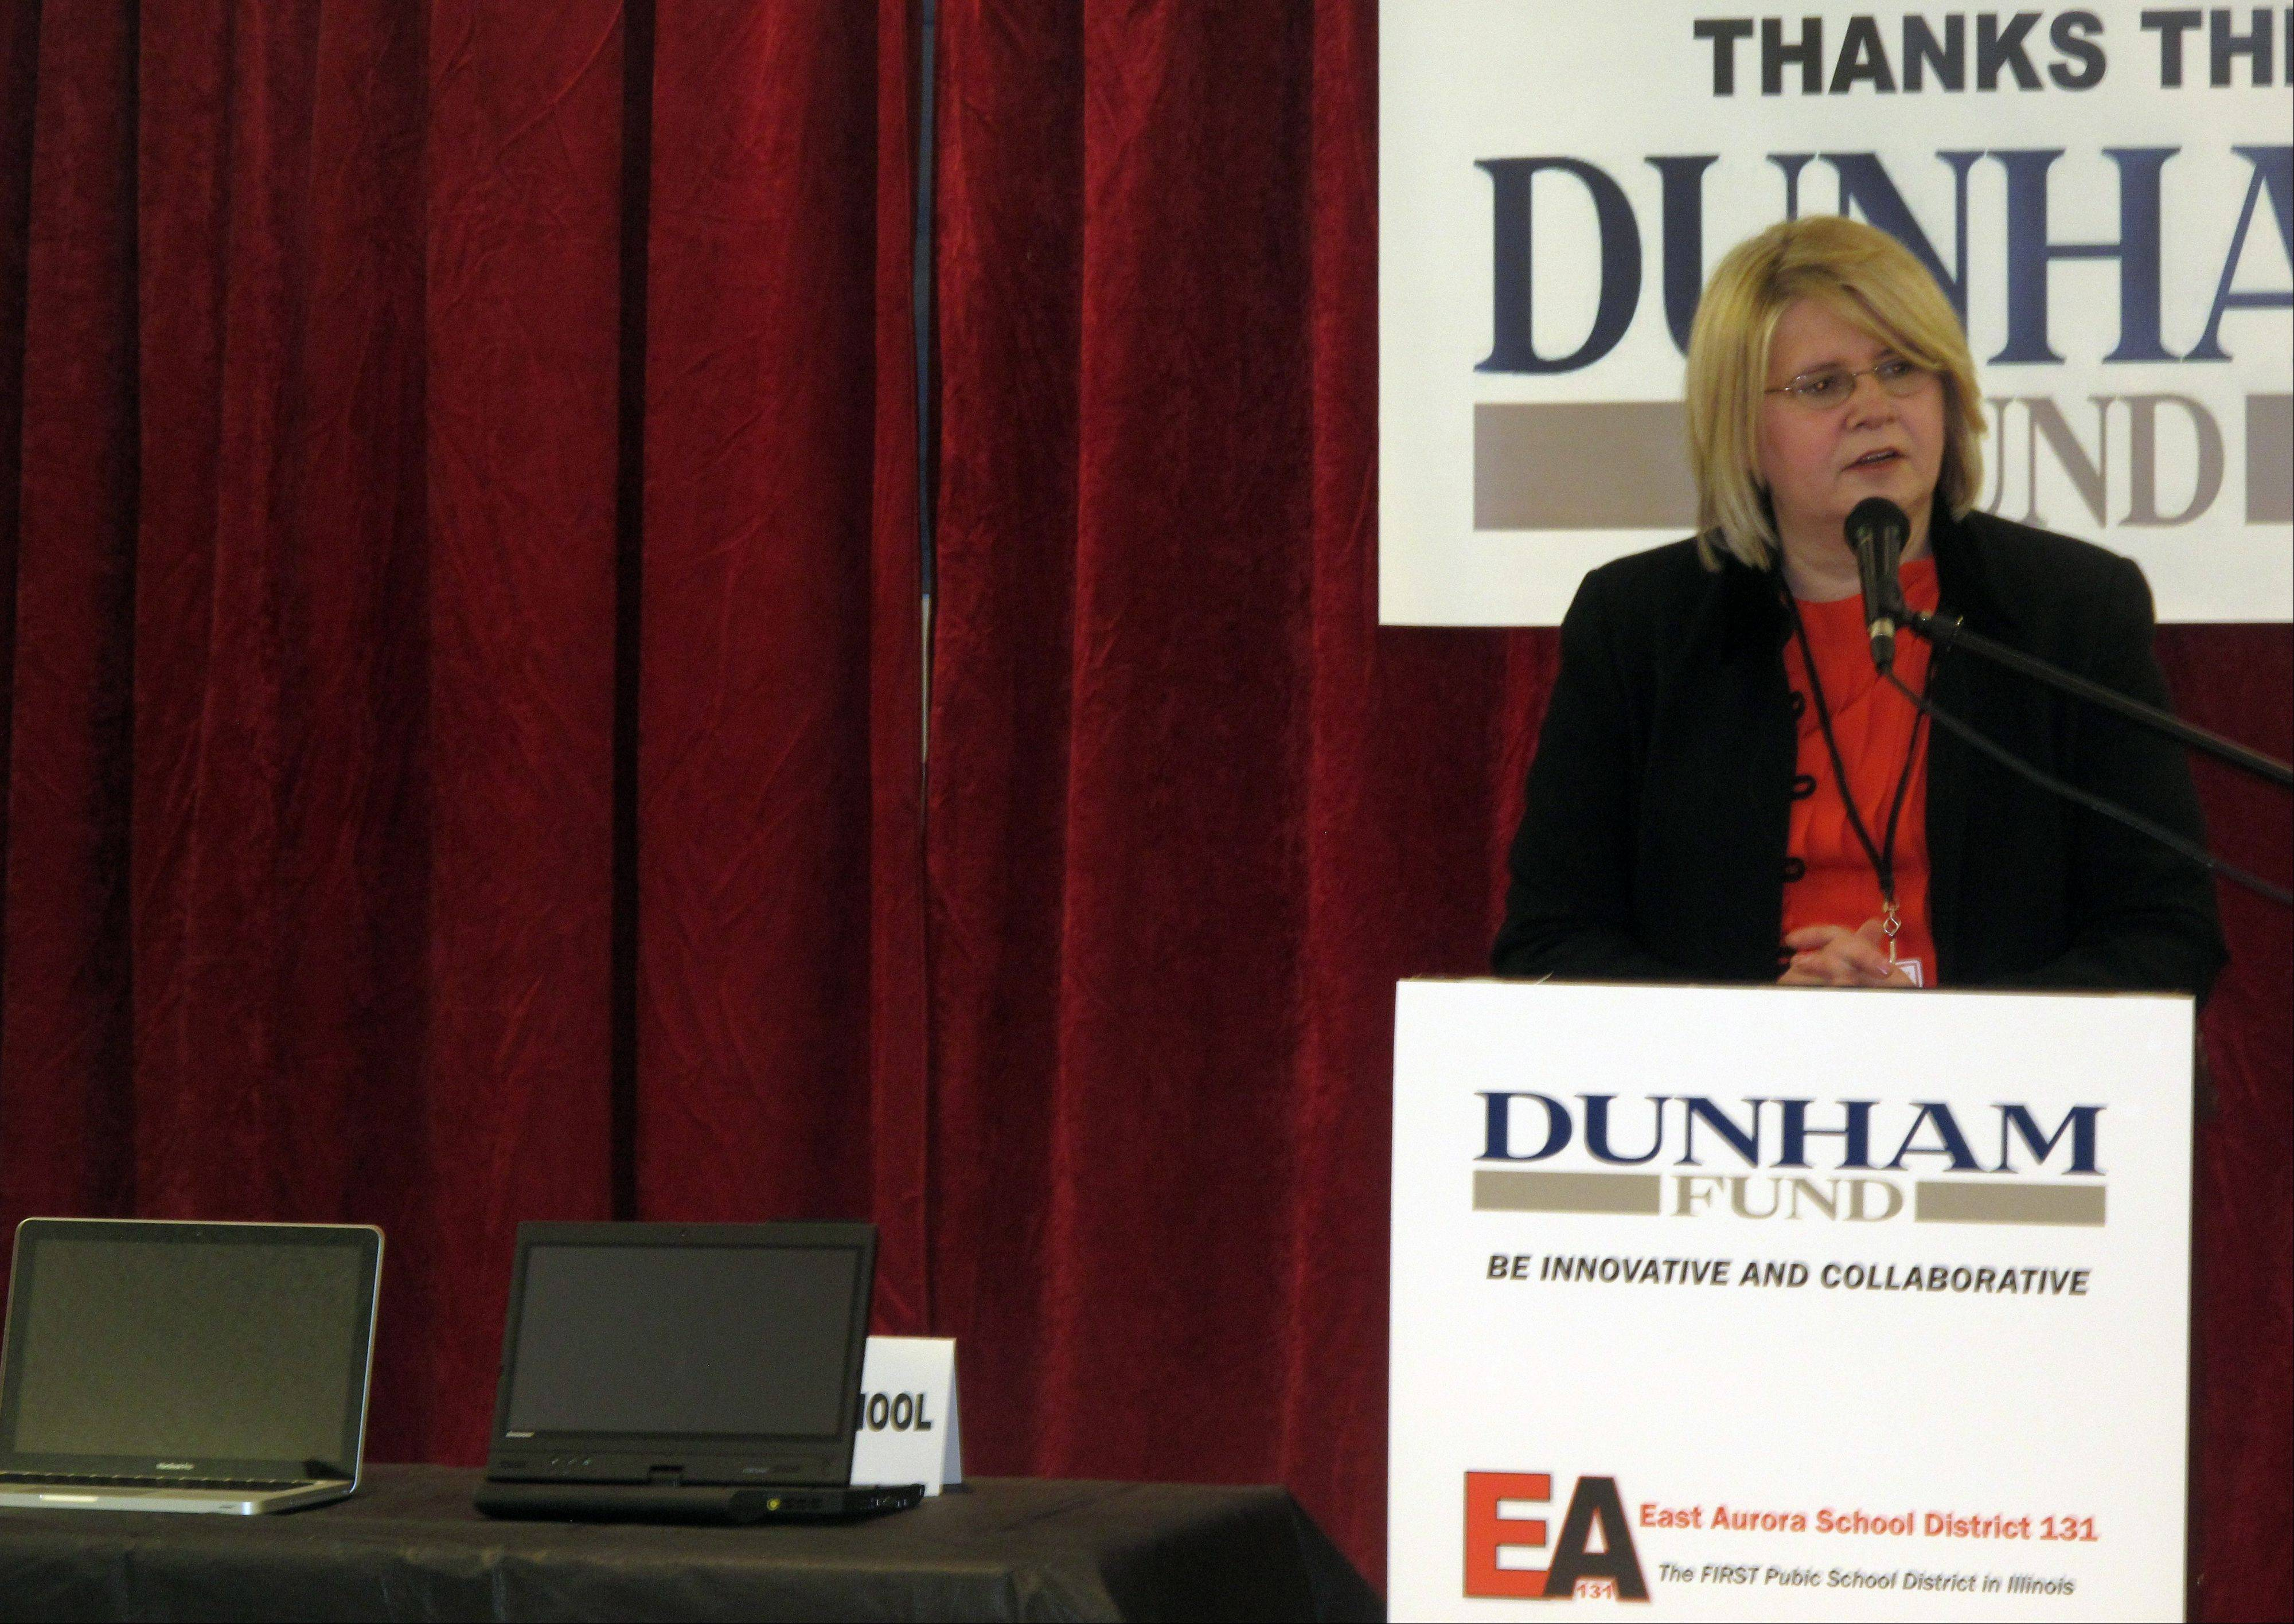 Annette Johnson, president of the East Aurora District 131 school board, discusses the laptops the district will buy for each student in its magnet academy using a $660,000 grant from the Dunham Fund. MacBook Pros will be given to seventh- and eighth-grade students, while high schoolers will be given tablet-style laptops.